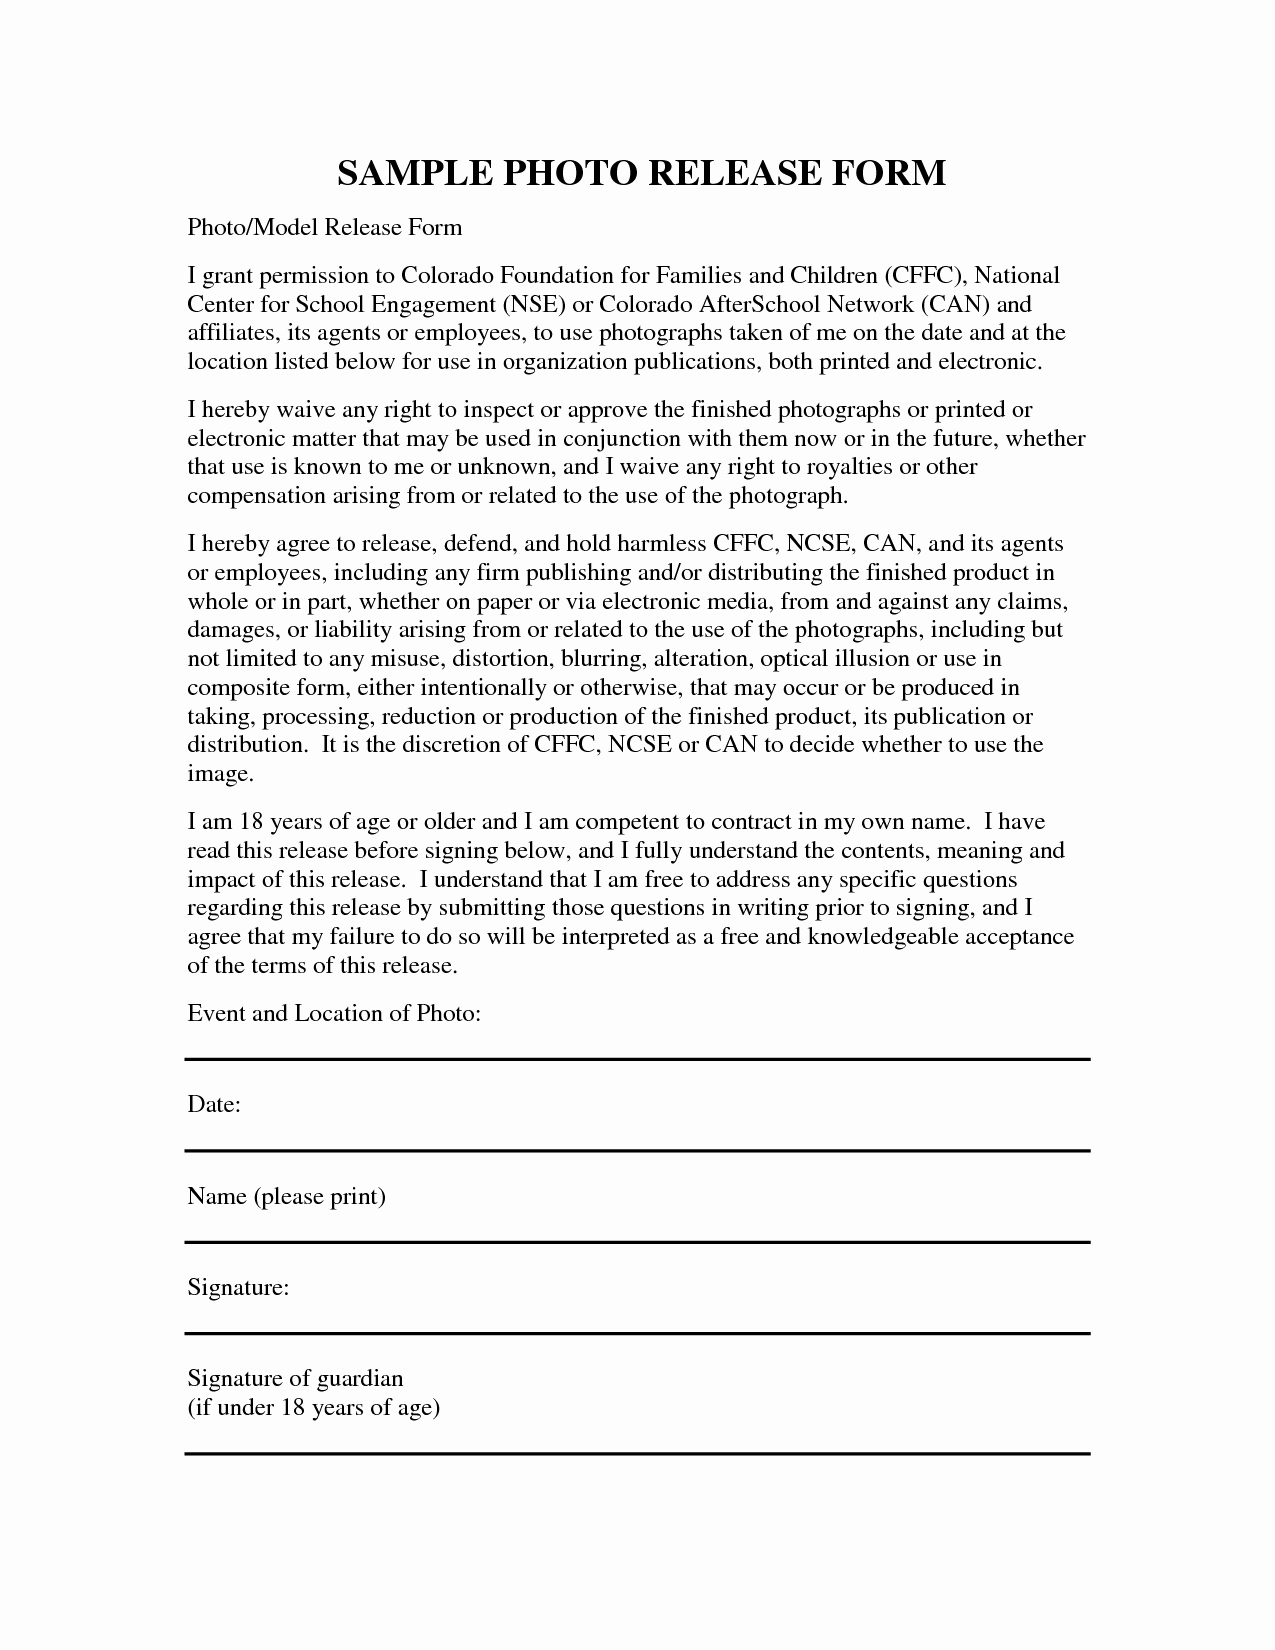 Liability Release form Template Inspirational Liability Release form Template Free Printable Documents